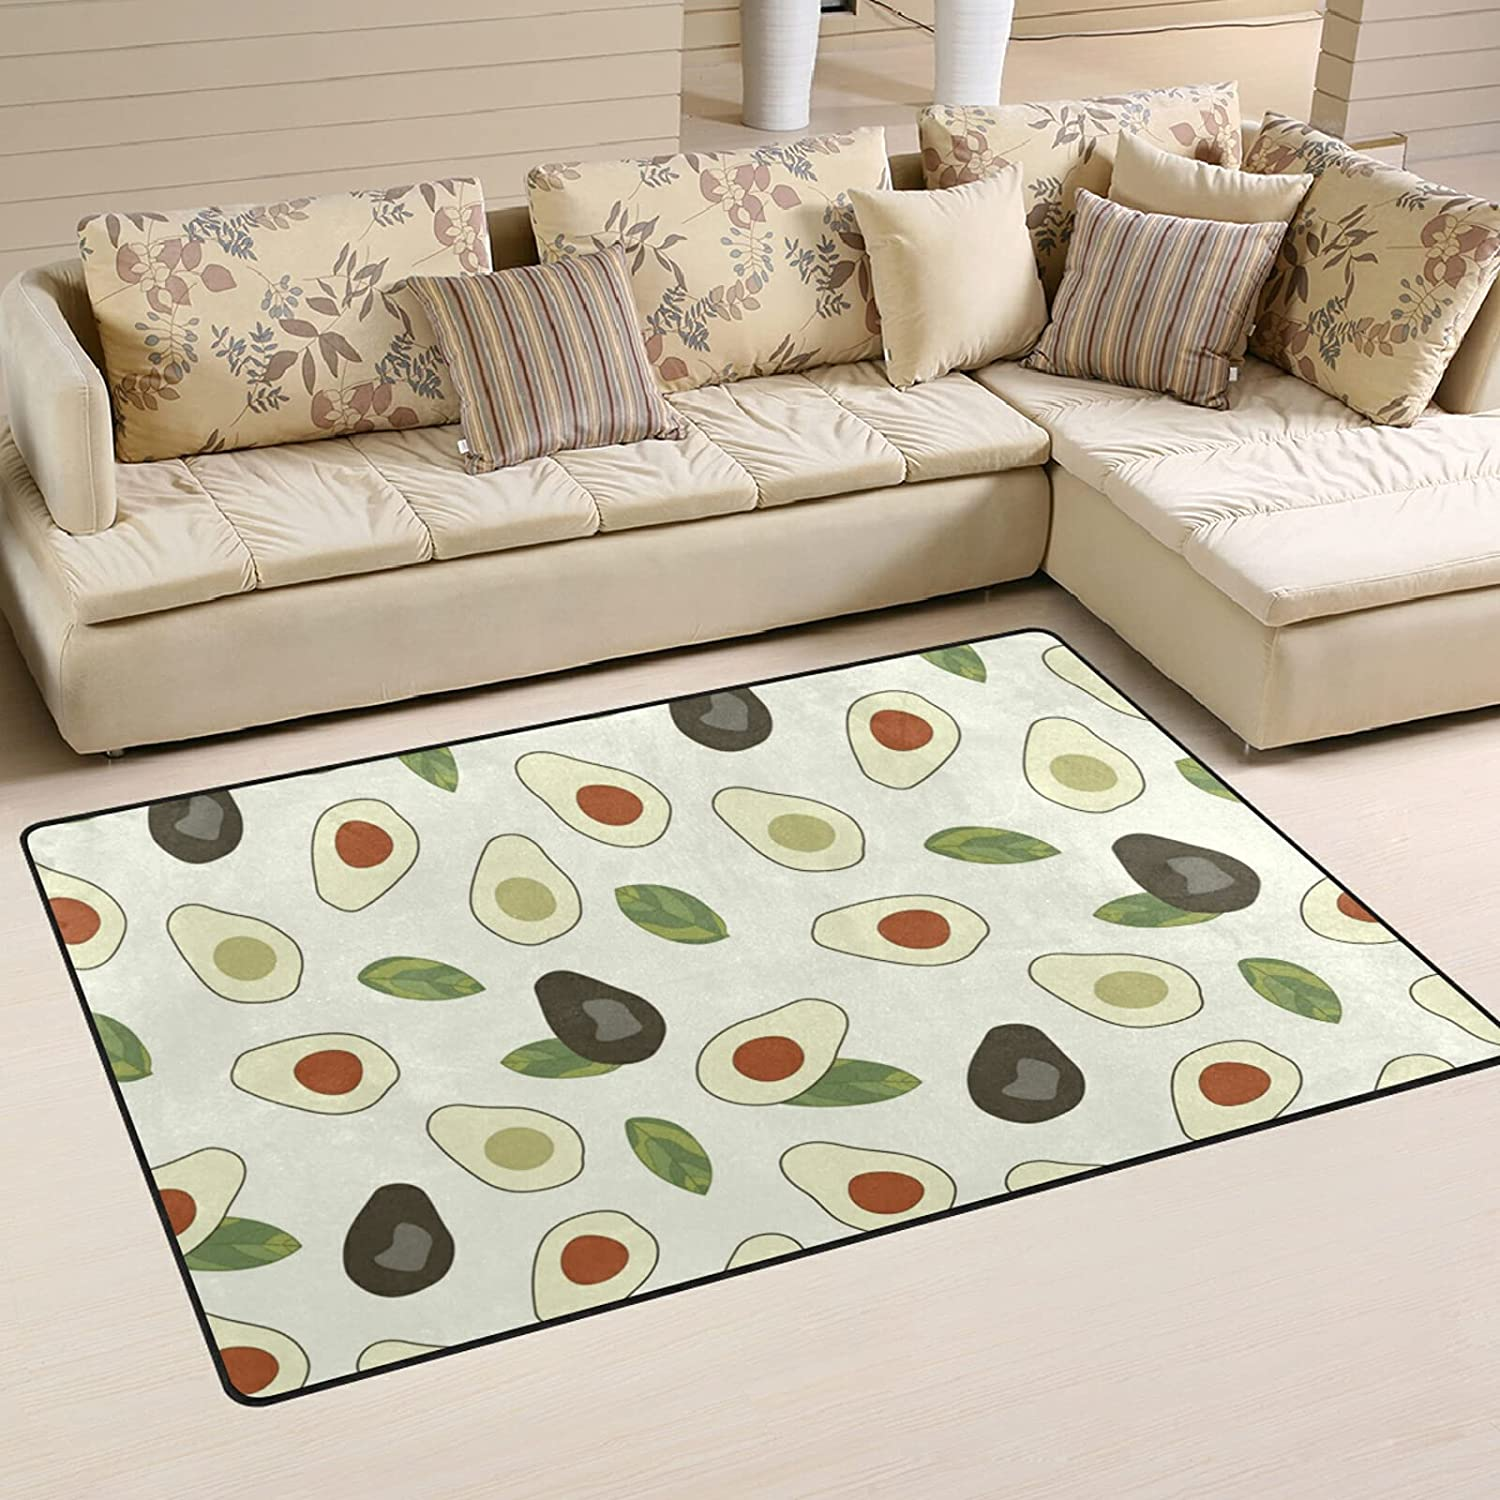 Cartoon Avocado Large supreme Soft Area Rugs Nursery Playmat Mat for Don't miss the campaign Rug